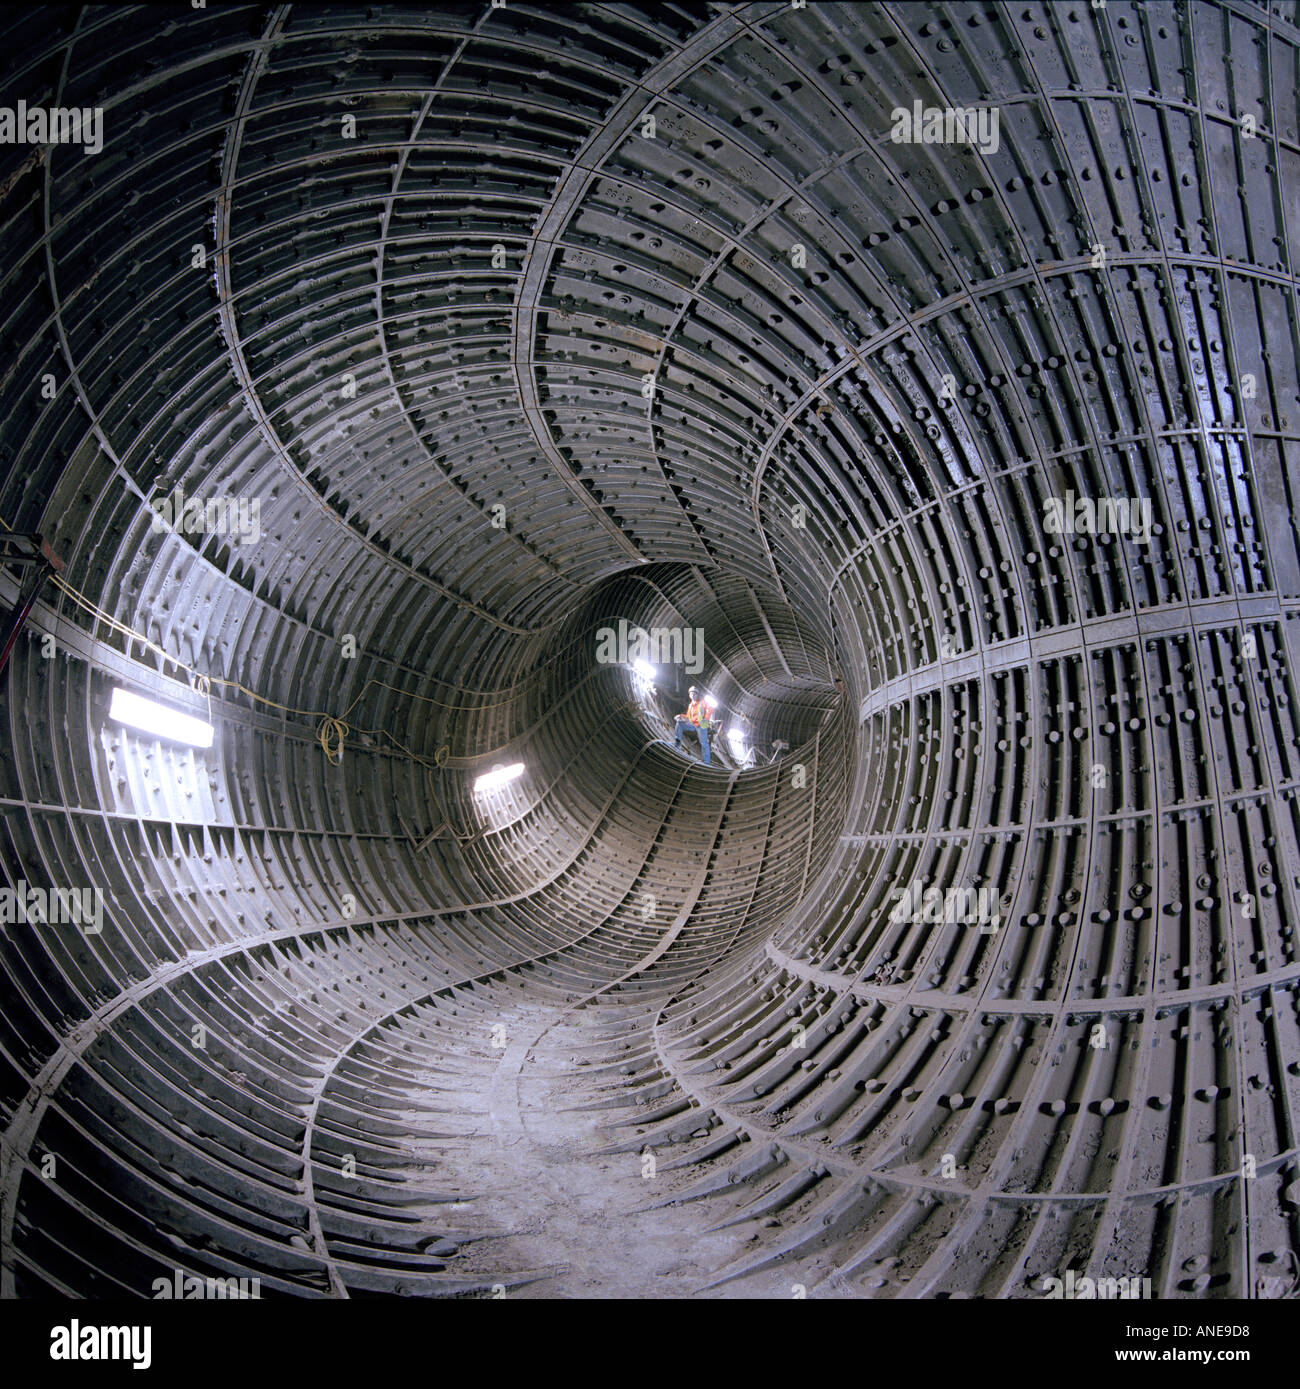 Cast iron tunnel lining segments form a fascinating pattern in a ventilation shaft on the London Underground Network - Stock Image